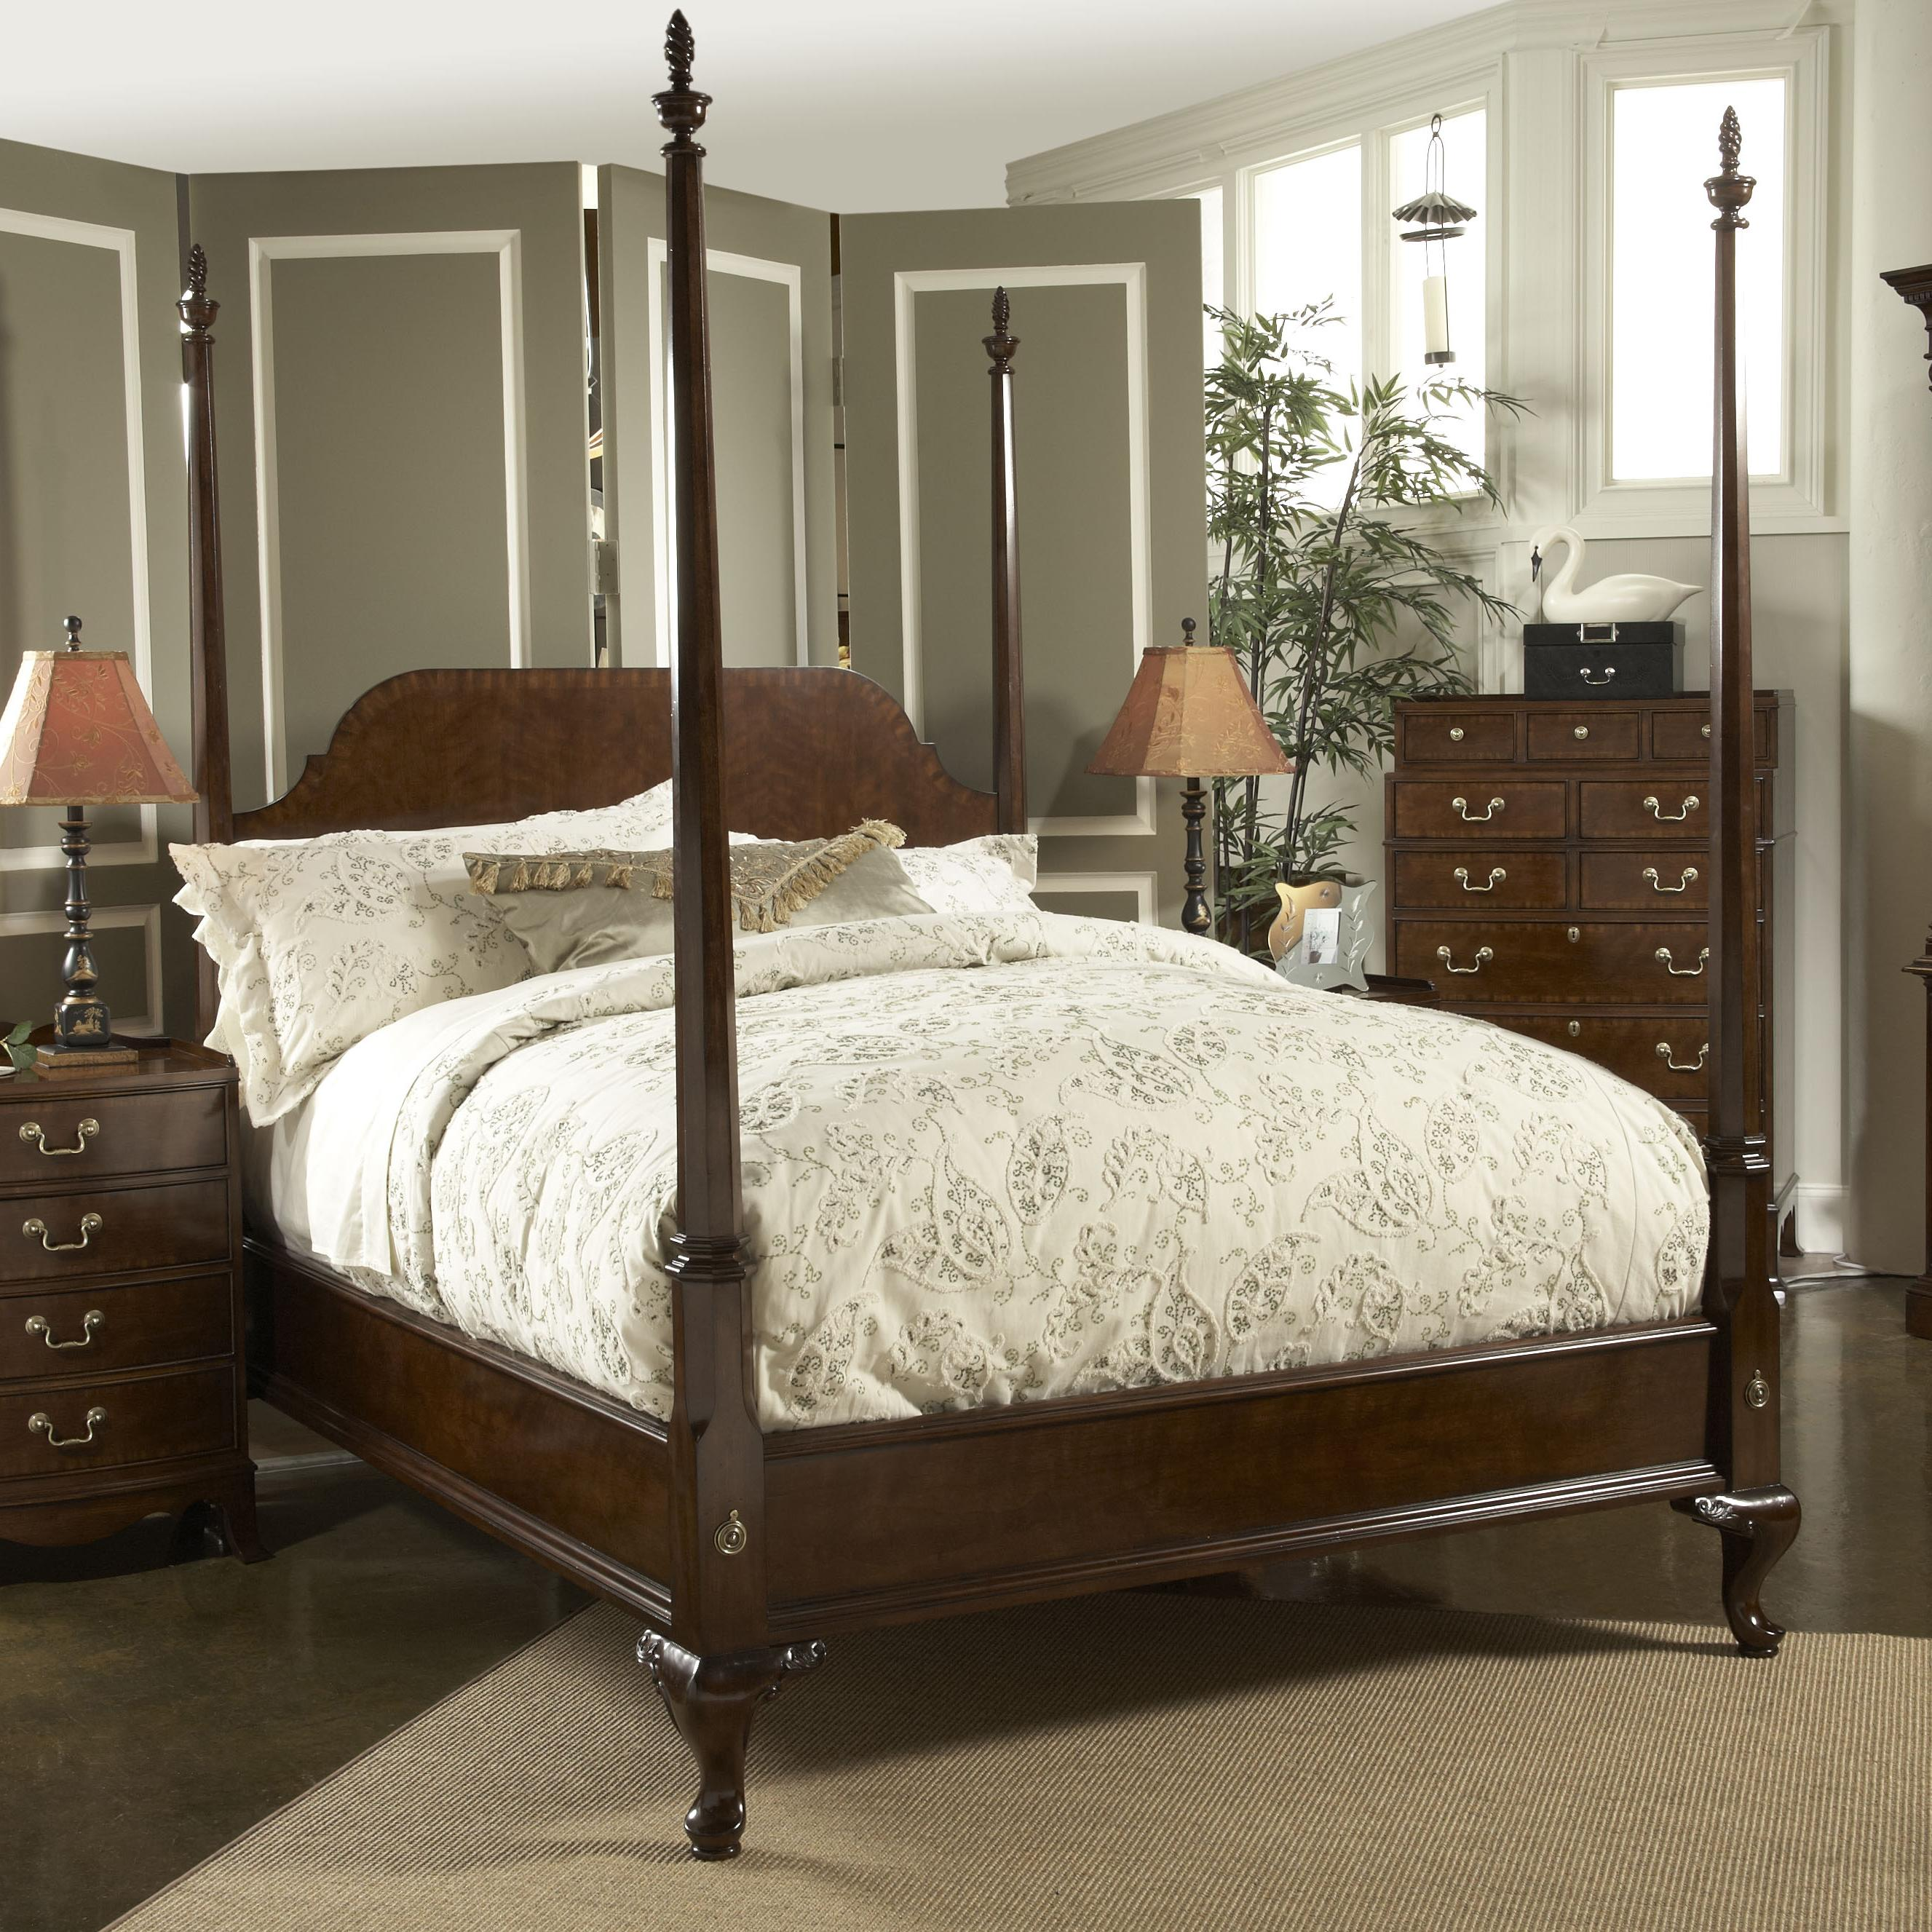 King Size Bed With Tall Posts